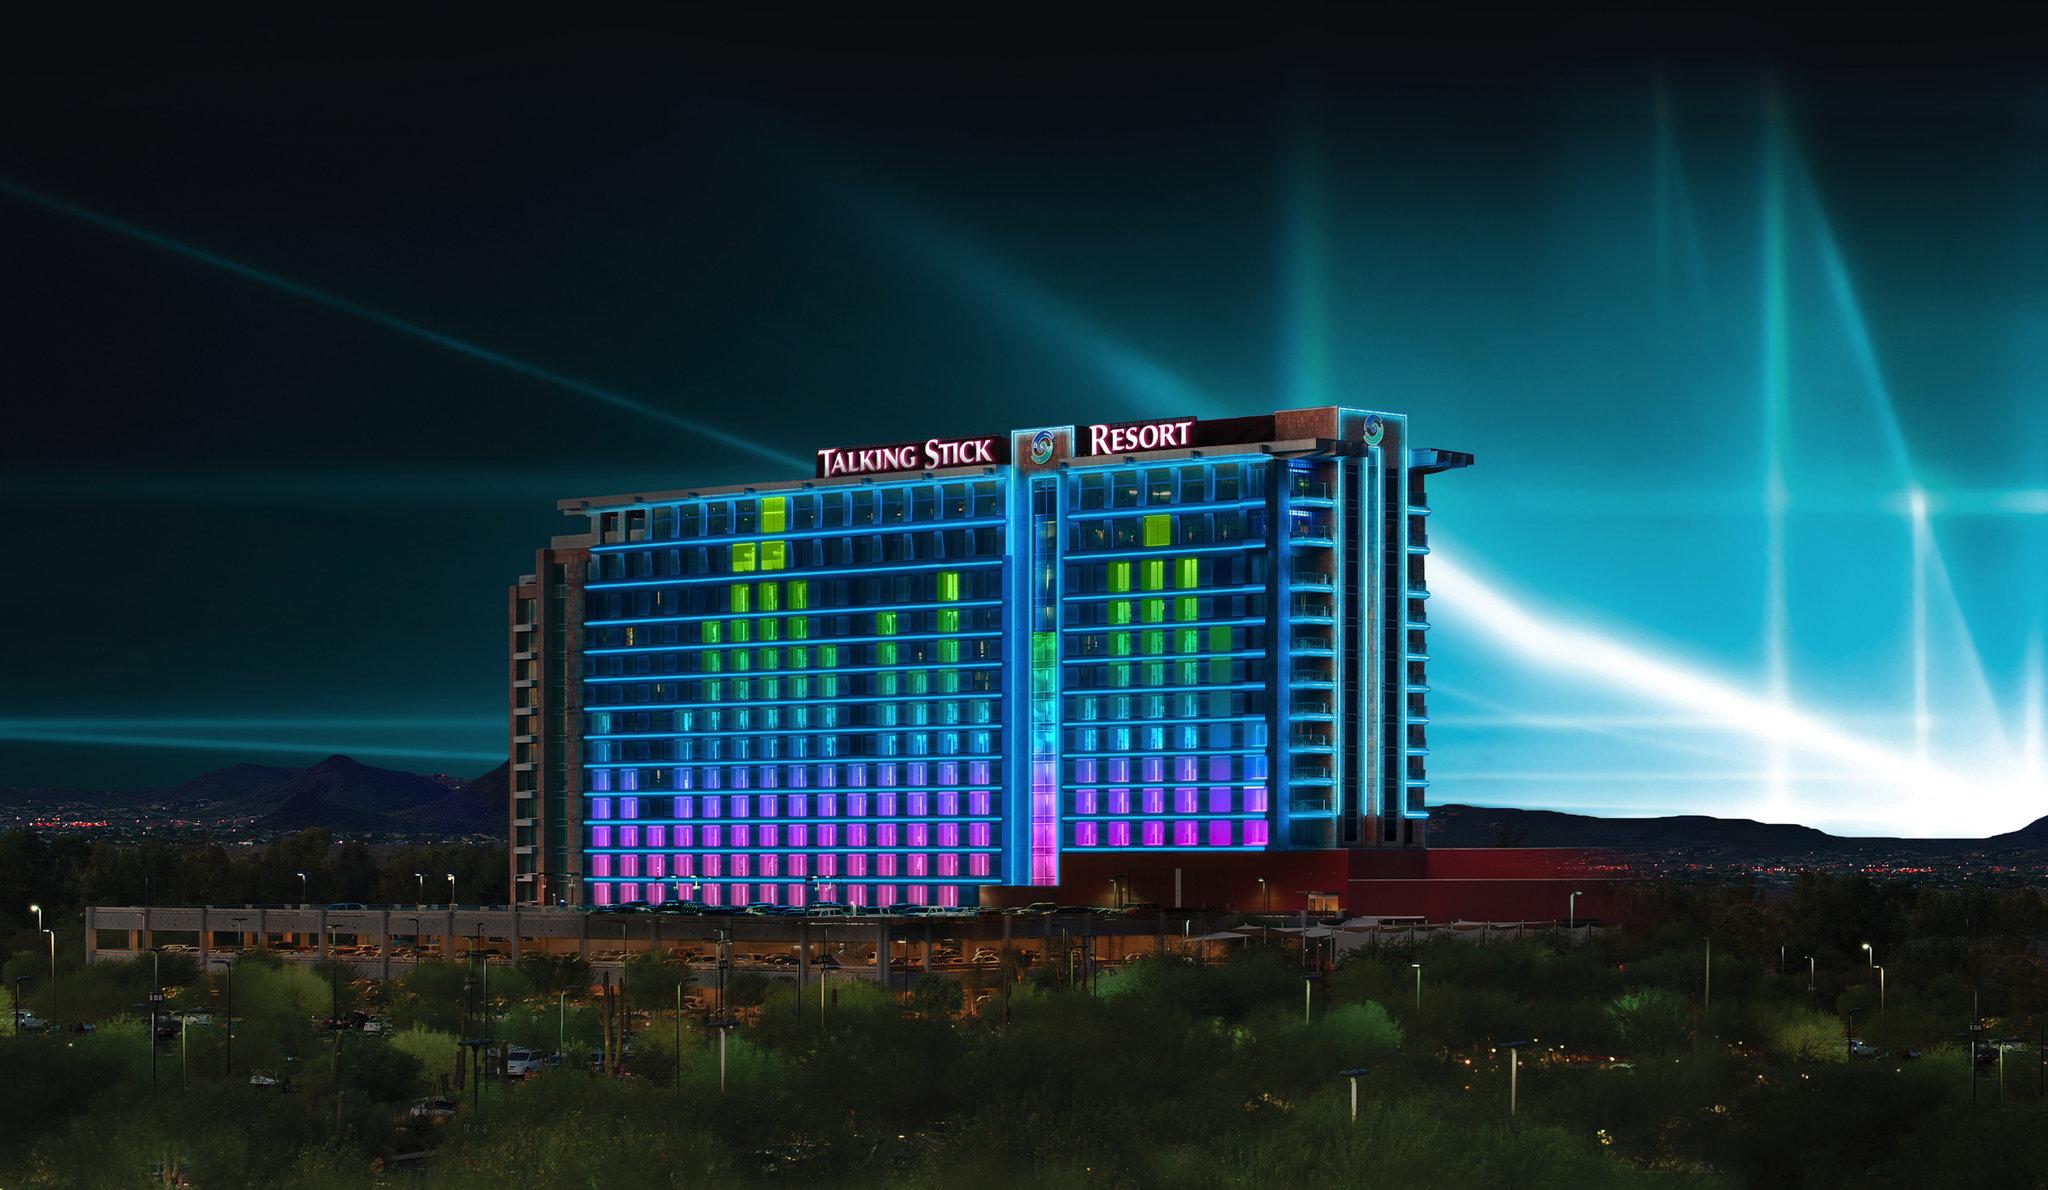 Talking Stick